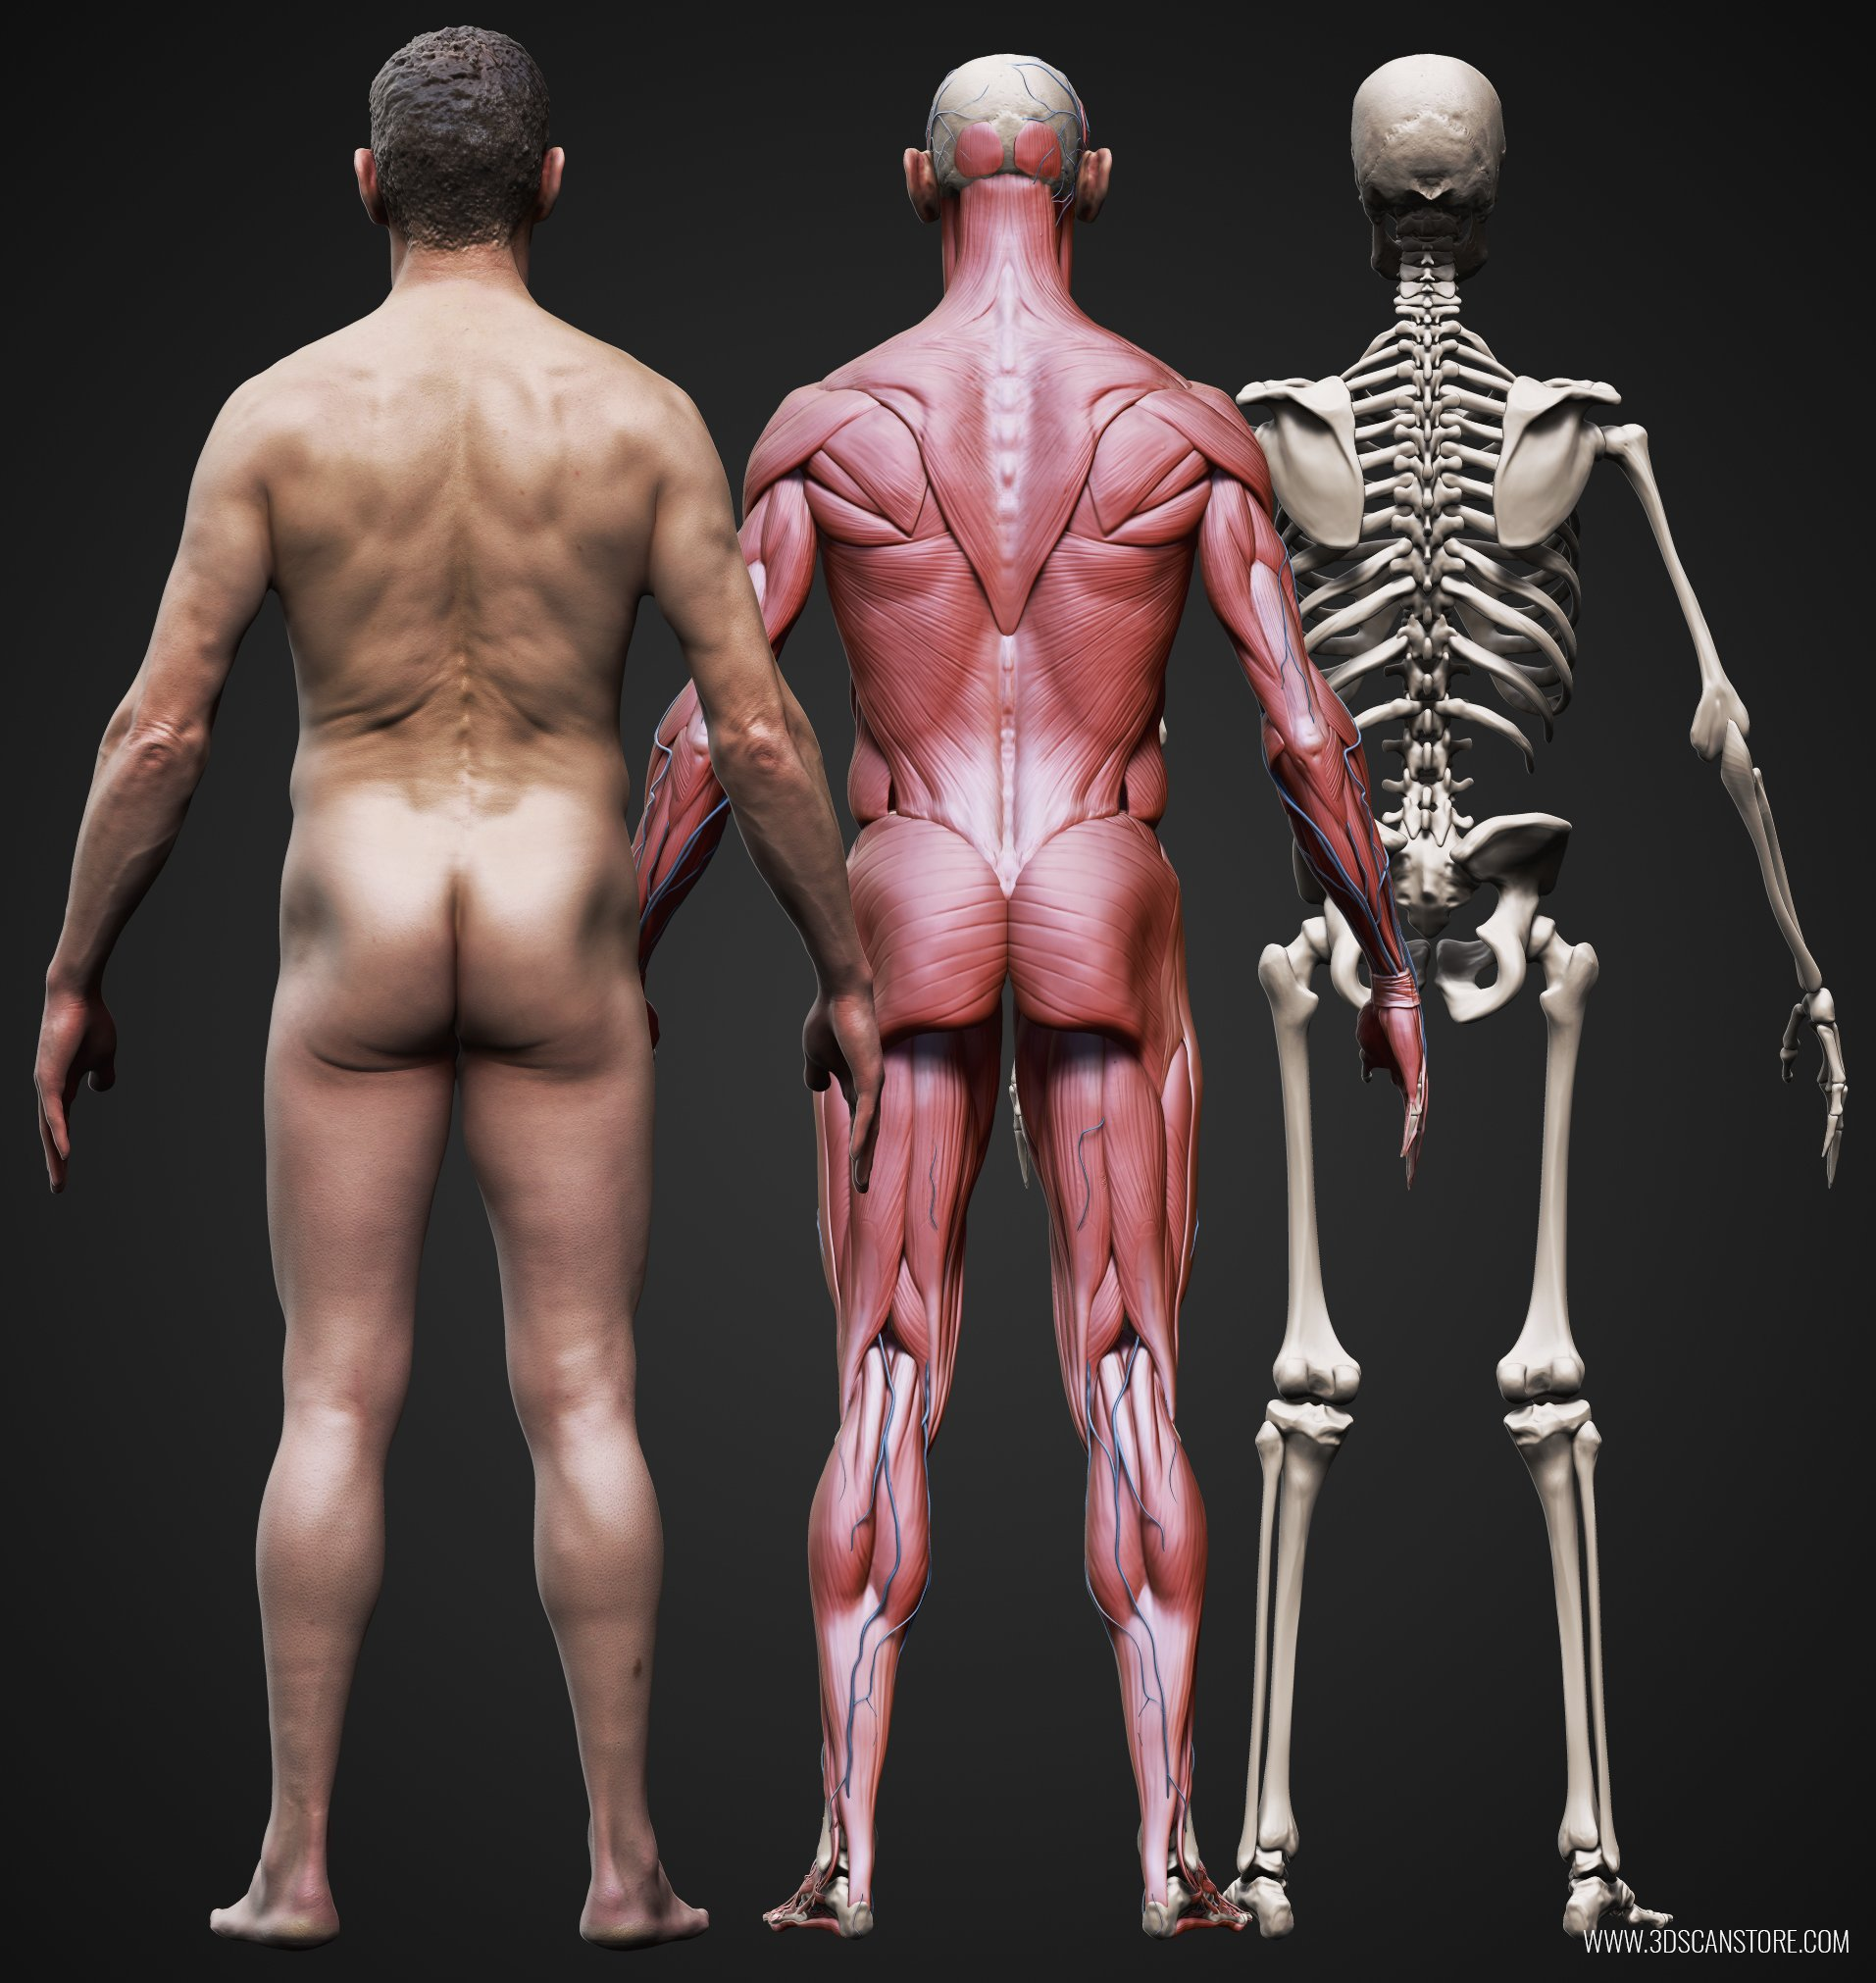 Male And Female Ecorche Update Muscles In The Body Diagram Tag Full Of Human Tags Models Zbrush 3d Scan Anatomy Reference Sculpting